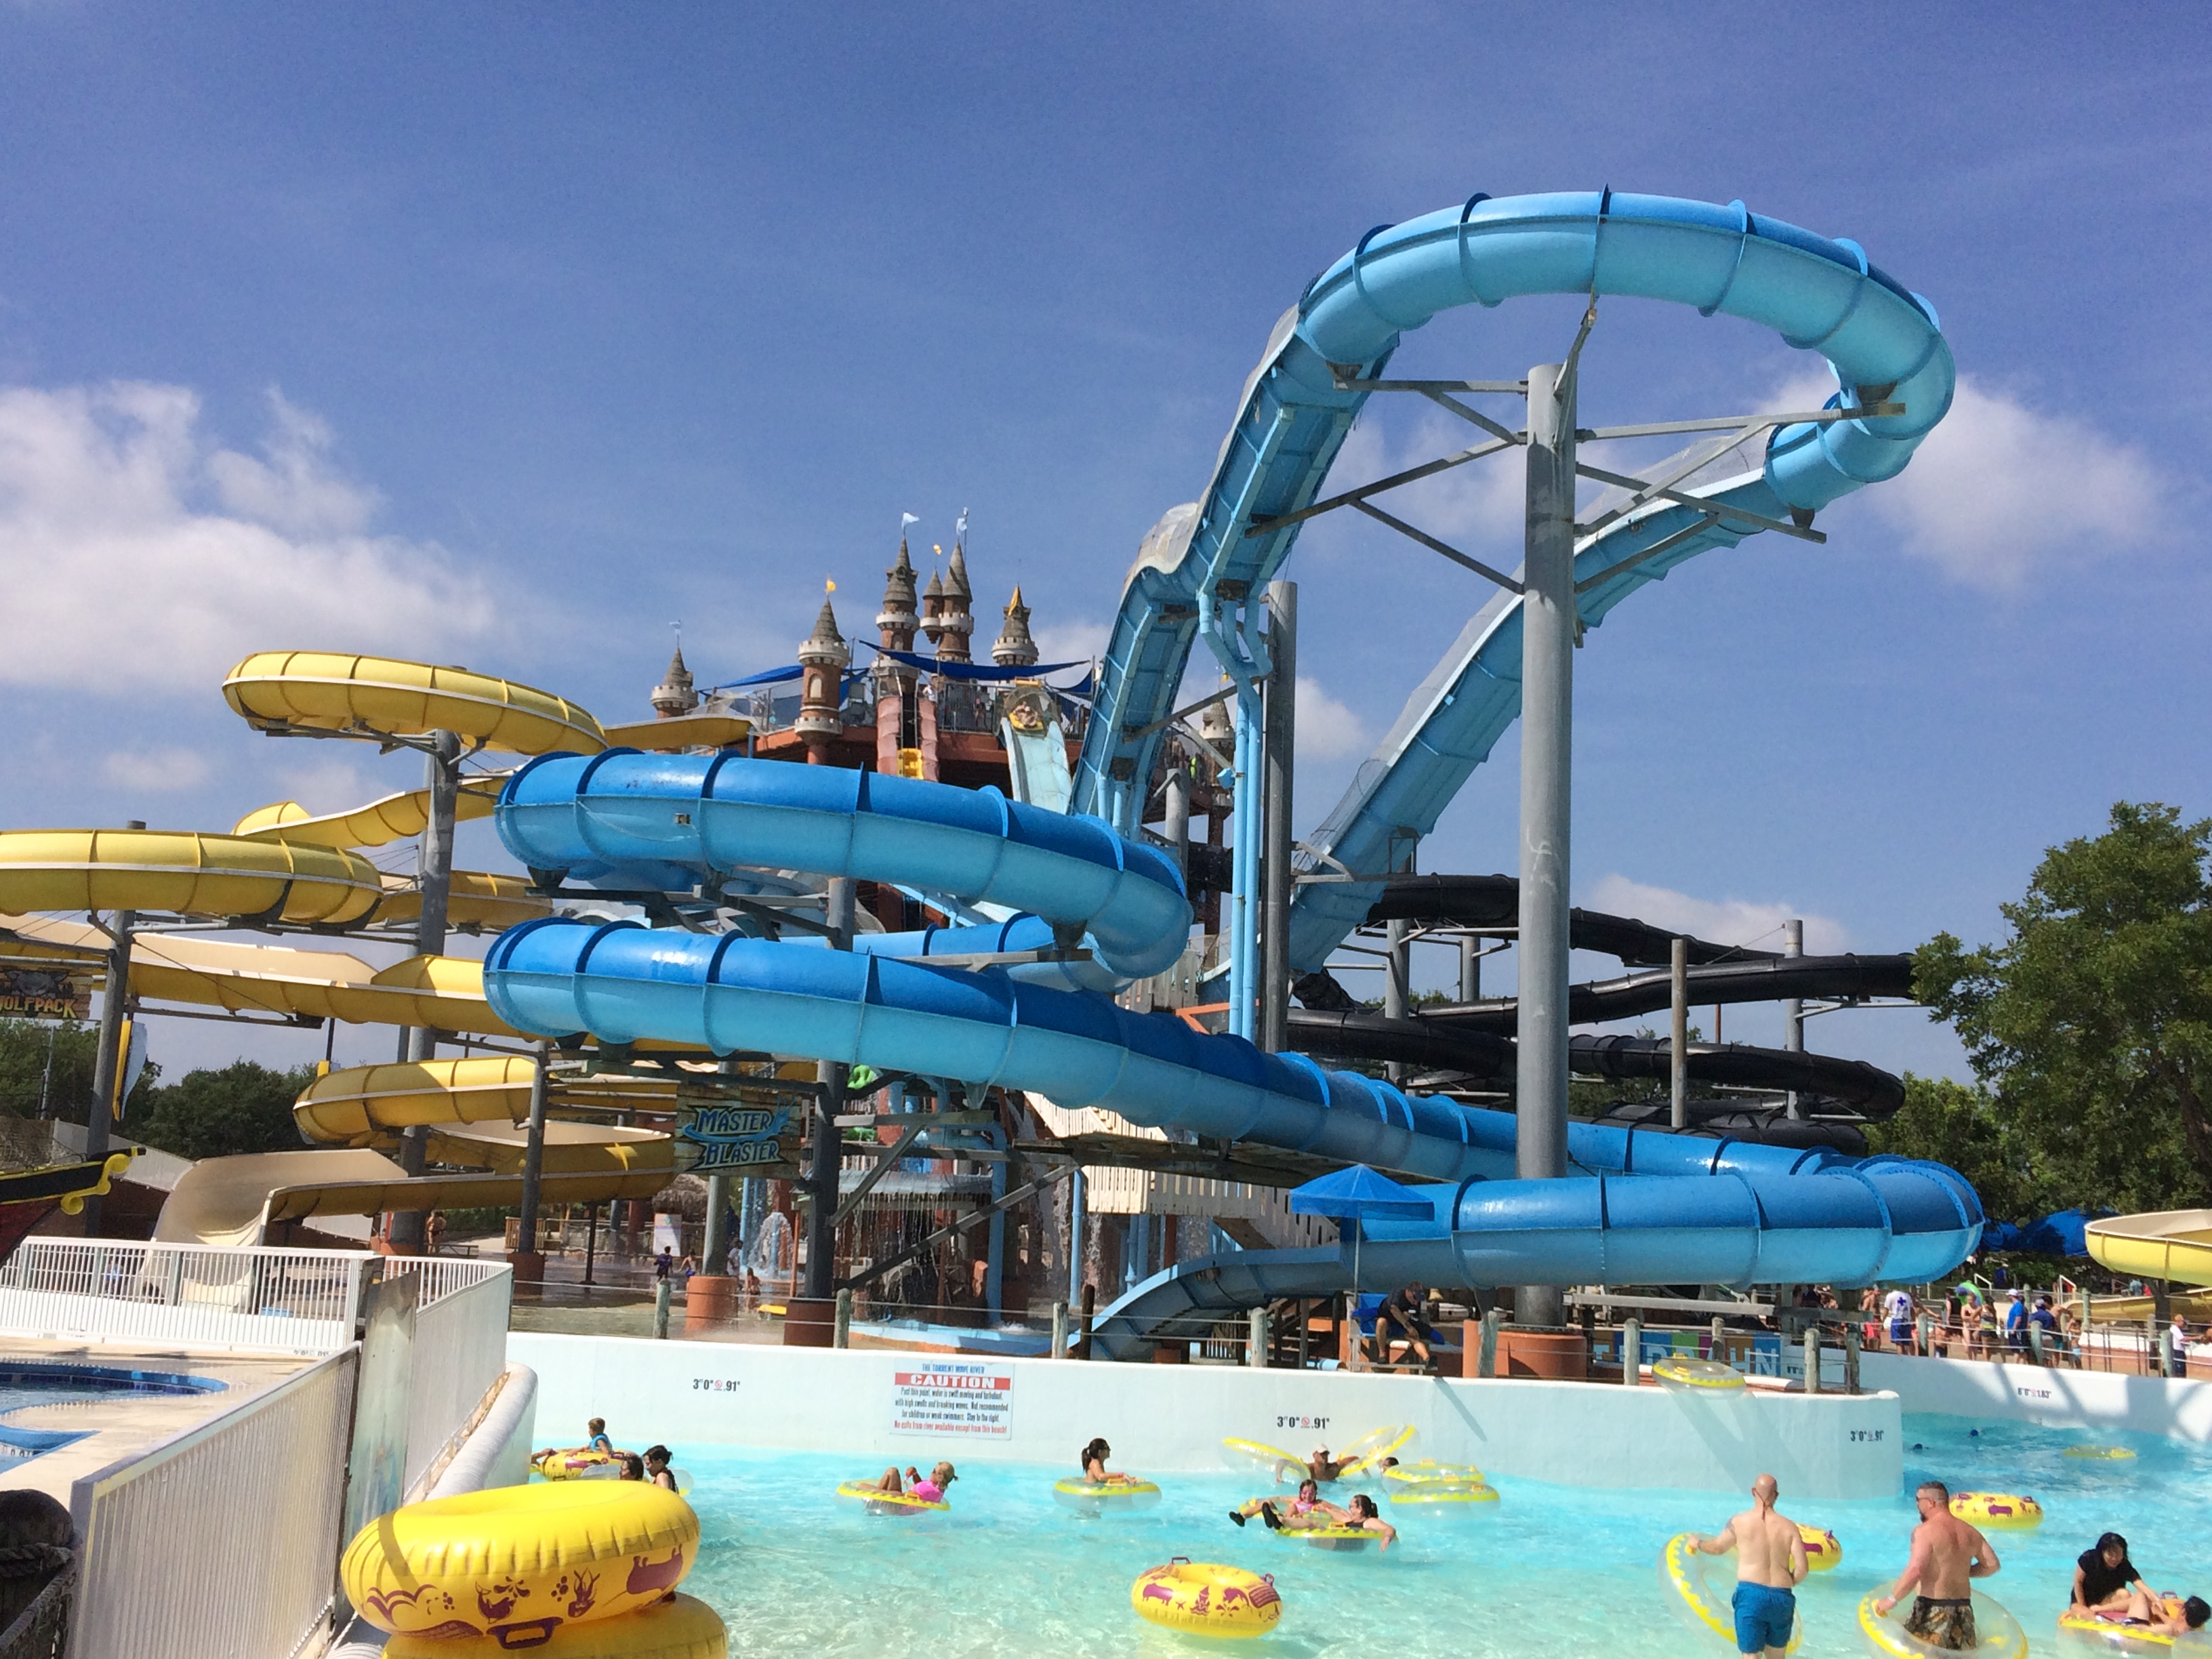 Schlitterbahn: Waterparks Are For Grown-ups, Too